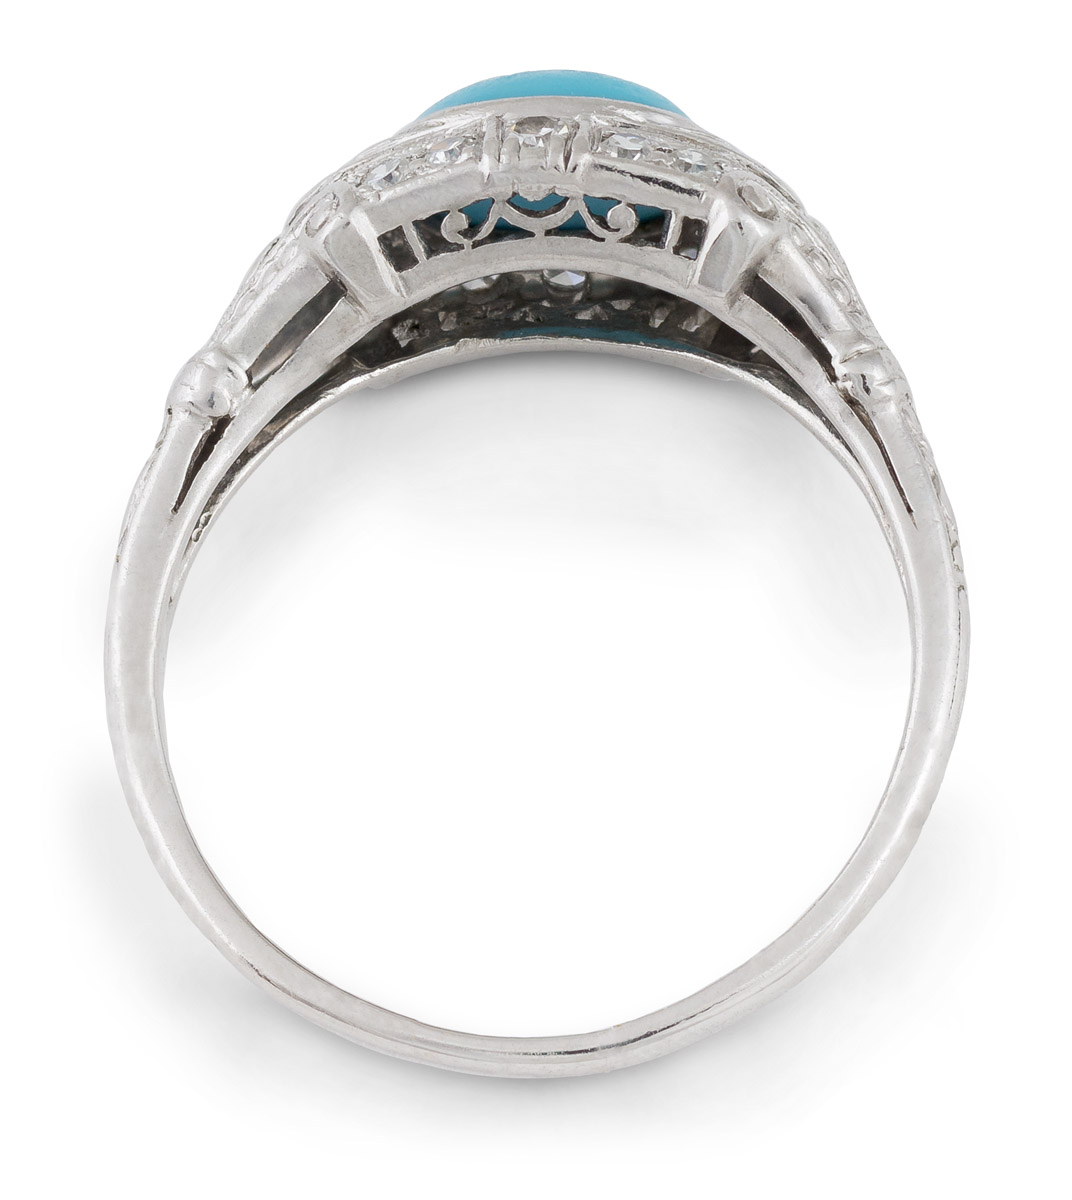 Vintage Turquoise Ring with Diamond Accents - Top